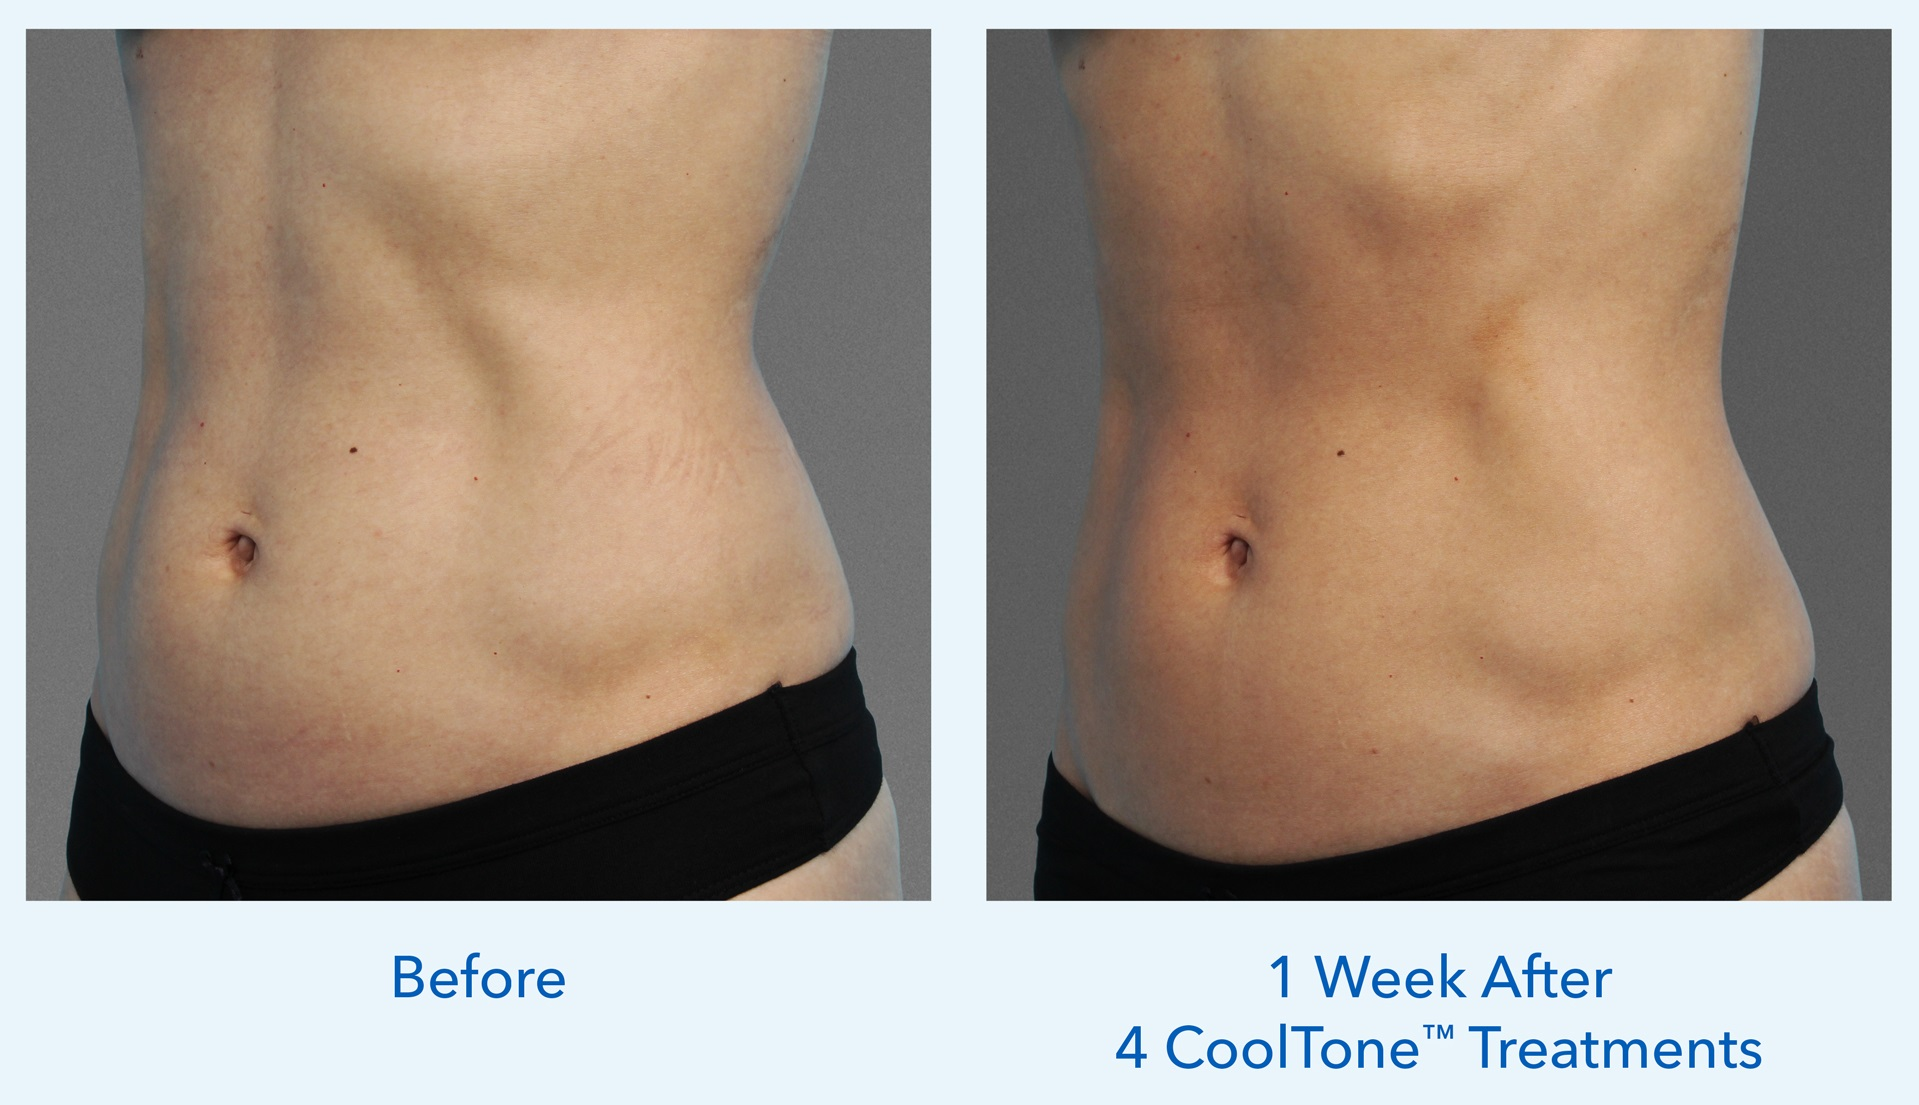 Before and After CoolTone™ Treatments